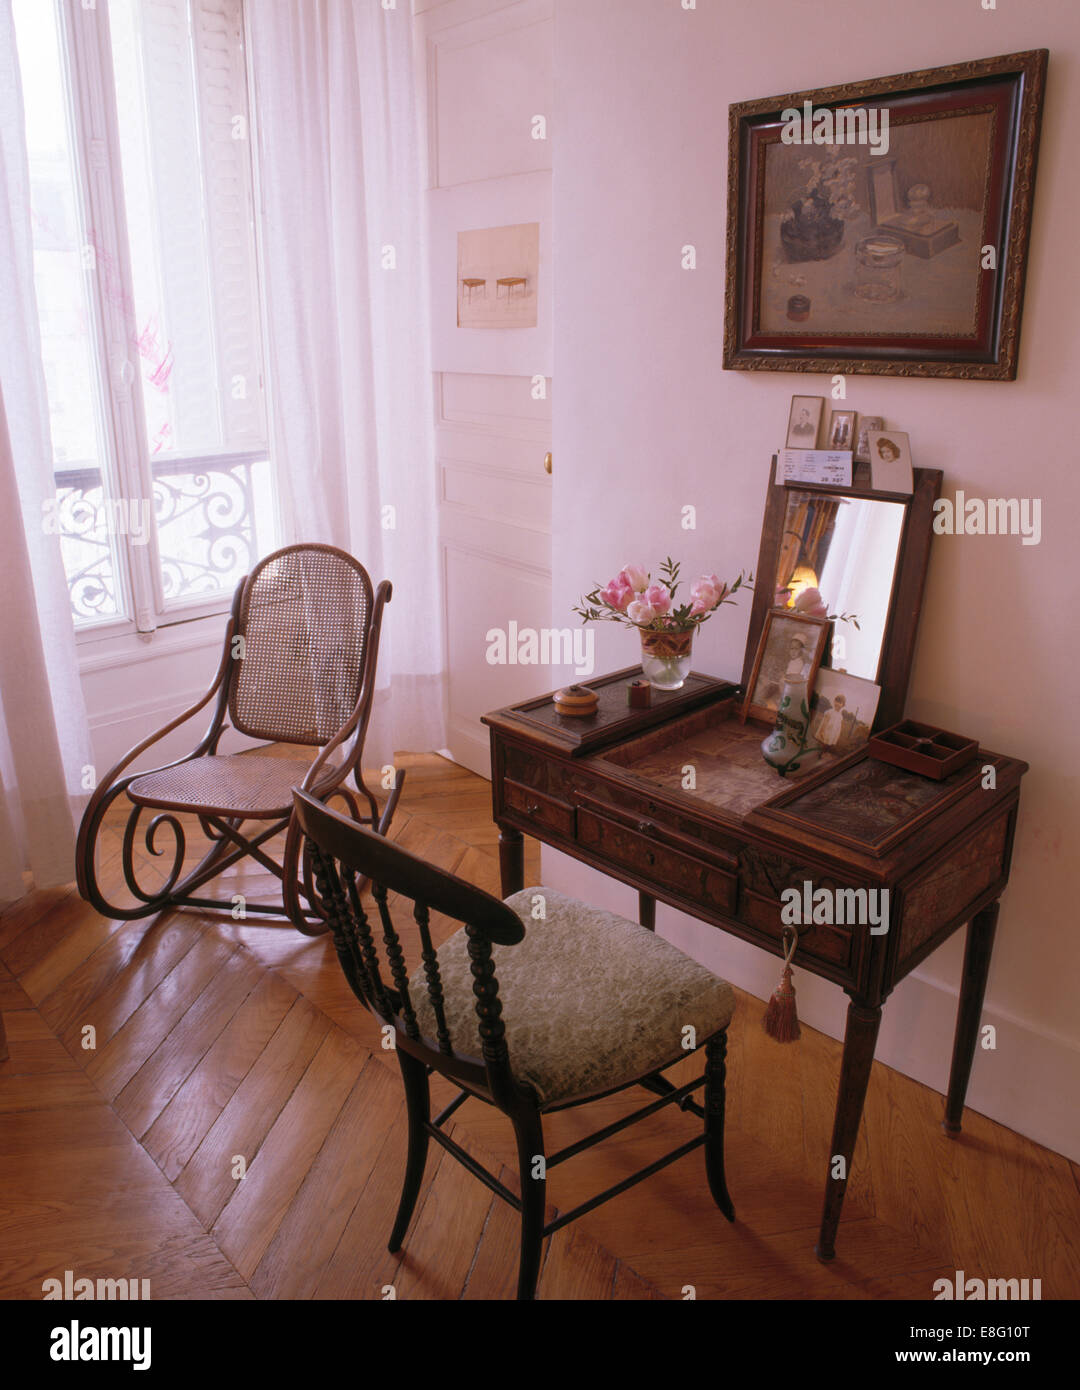 bedroom rocking chair nice dining room covers antique desk and in with bentwood parquet flooring